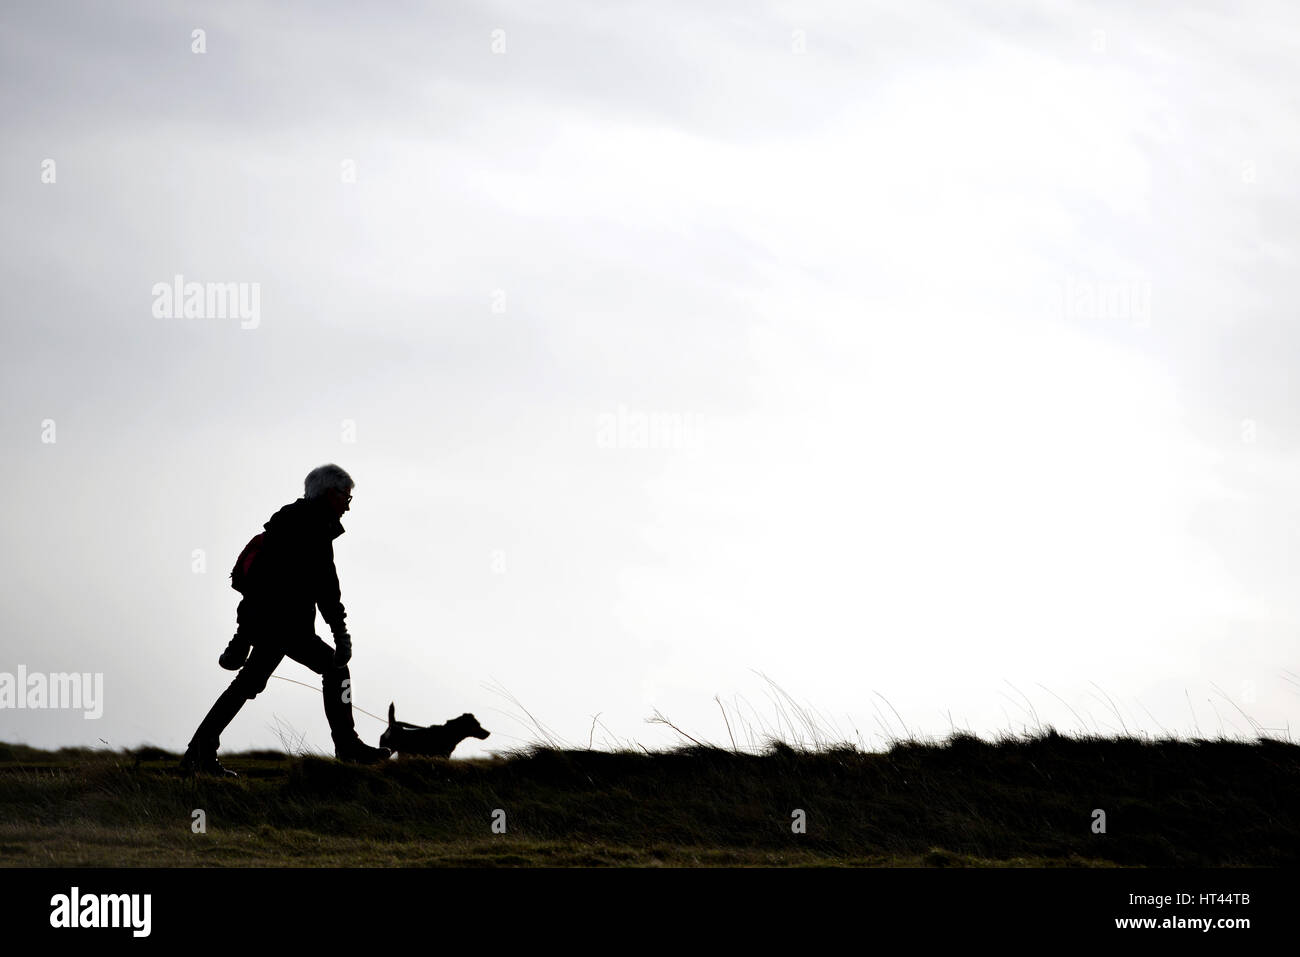 Silhouette of a woman walking a dog on a cloudy day - Stock Image